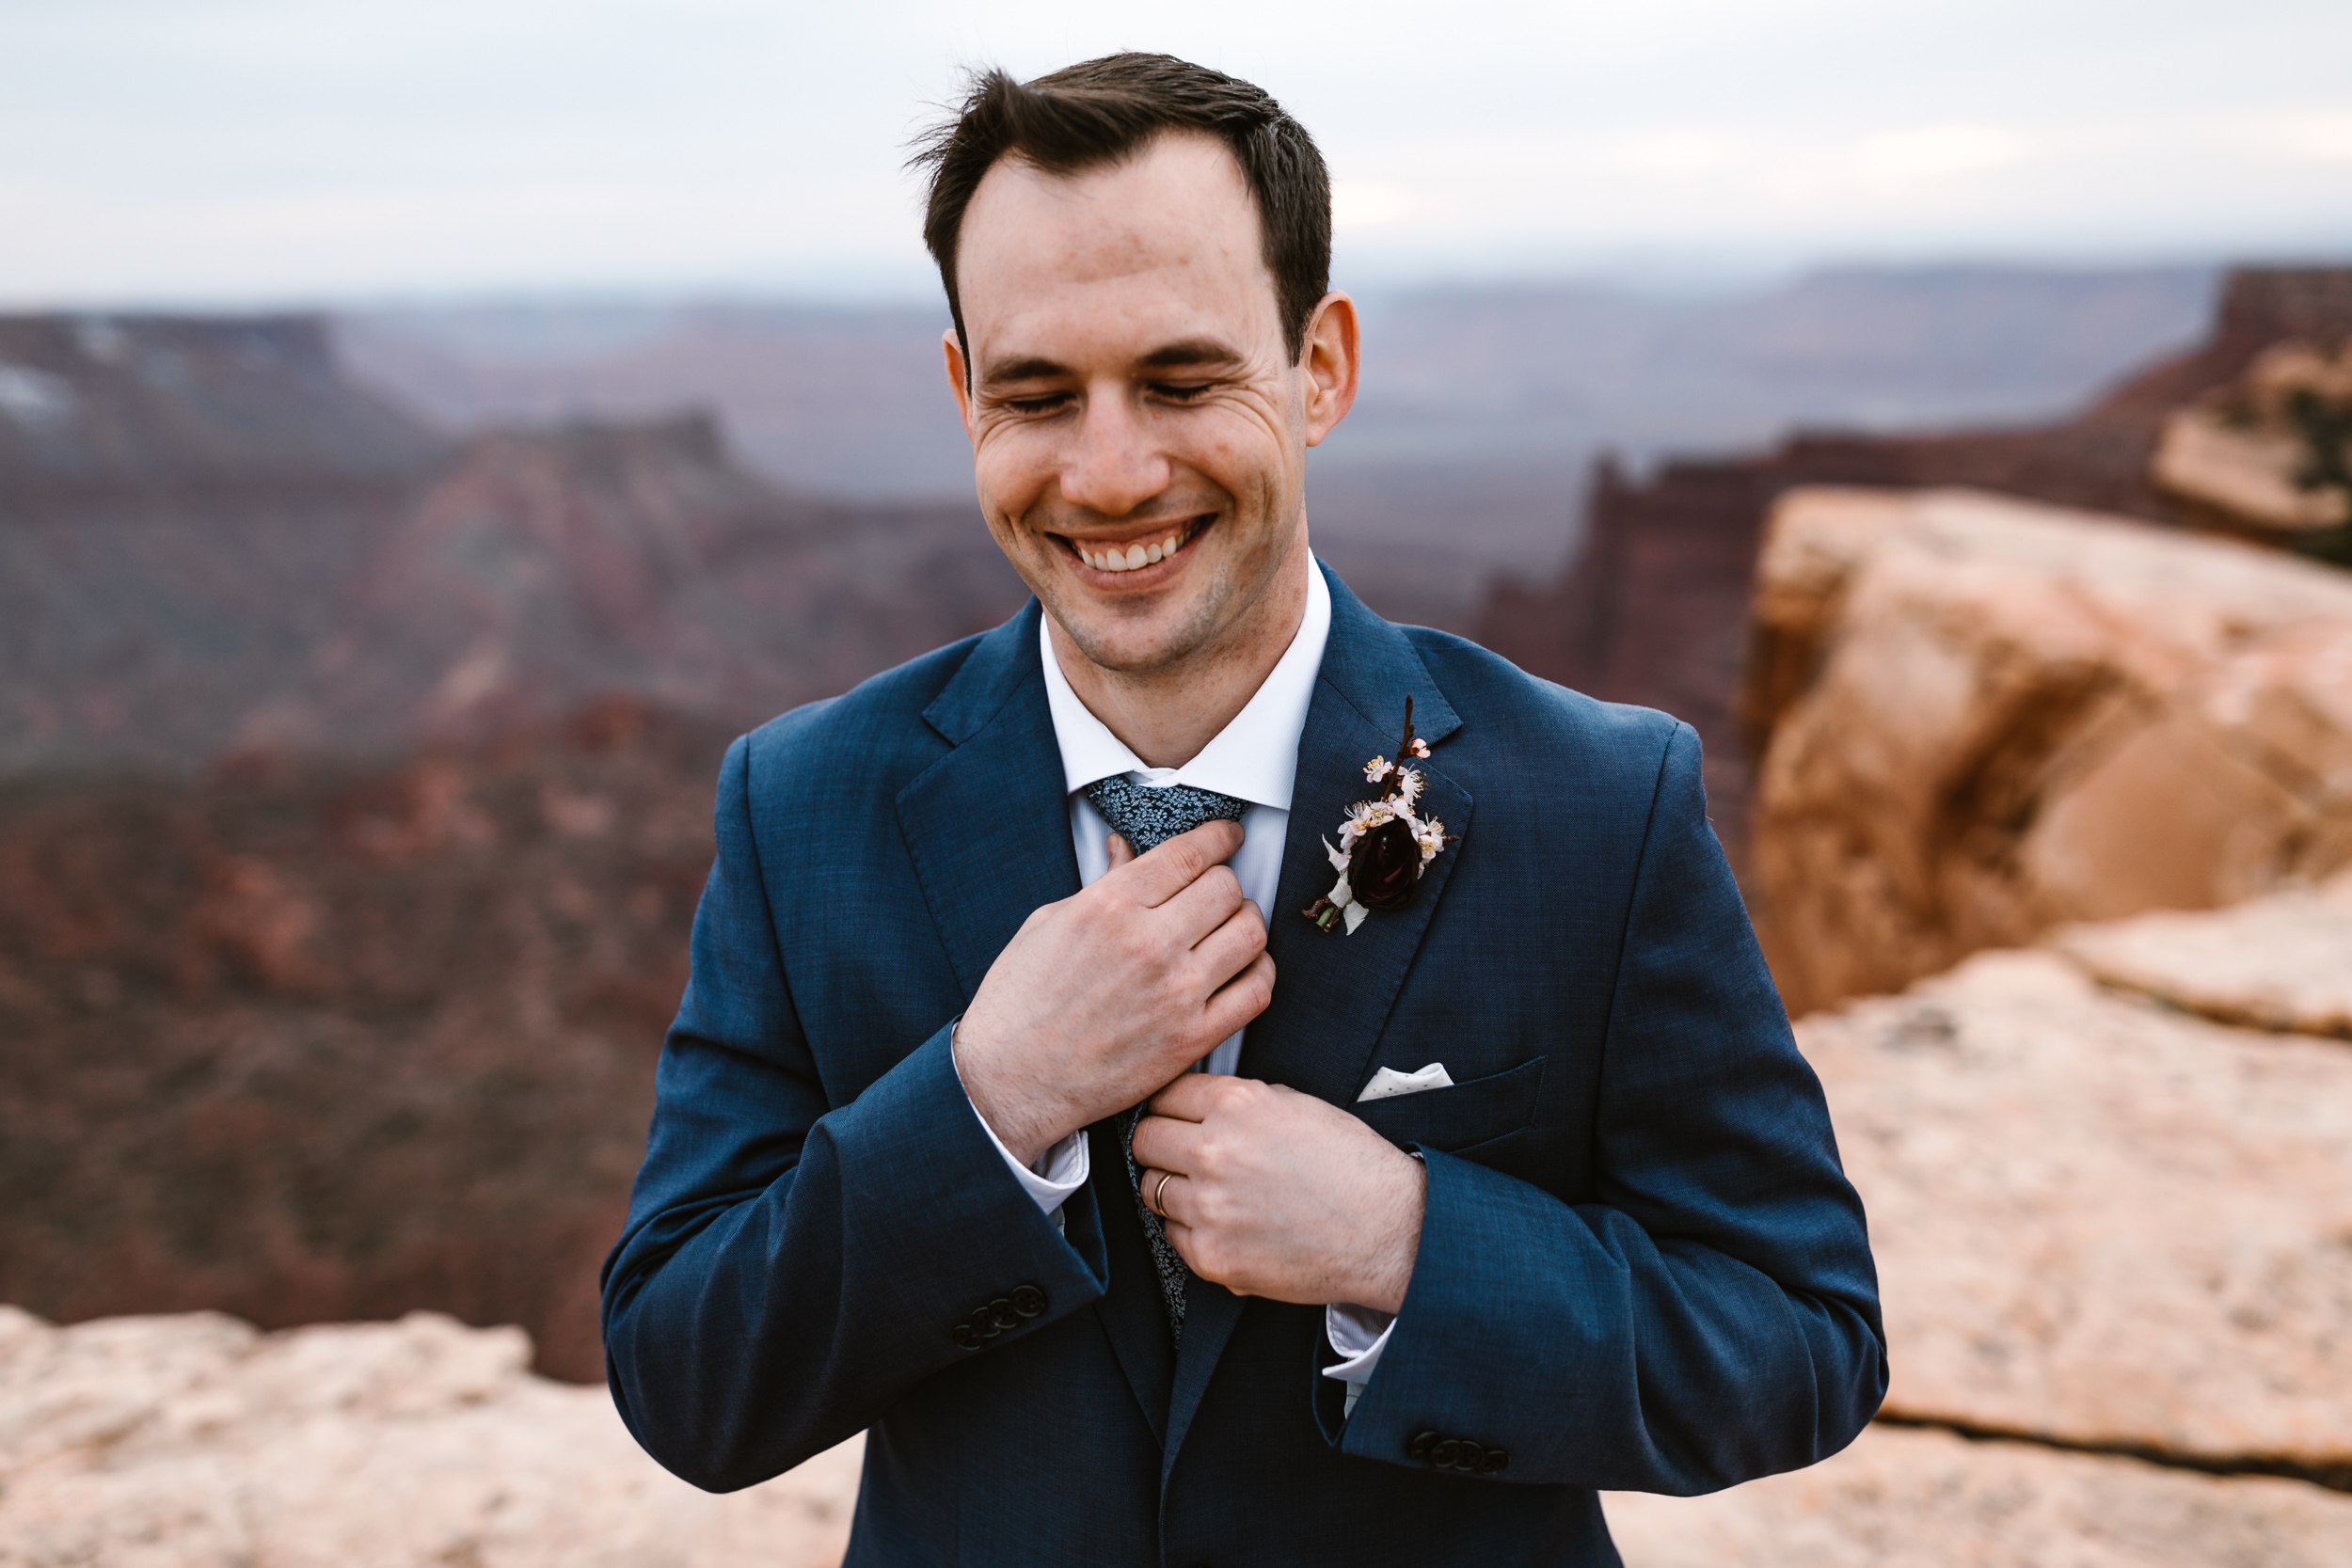 The Hearnes Adventure Wedding in Moab Utah Groom